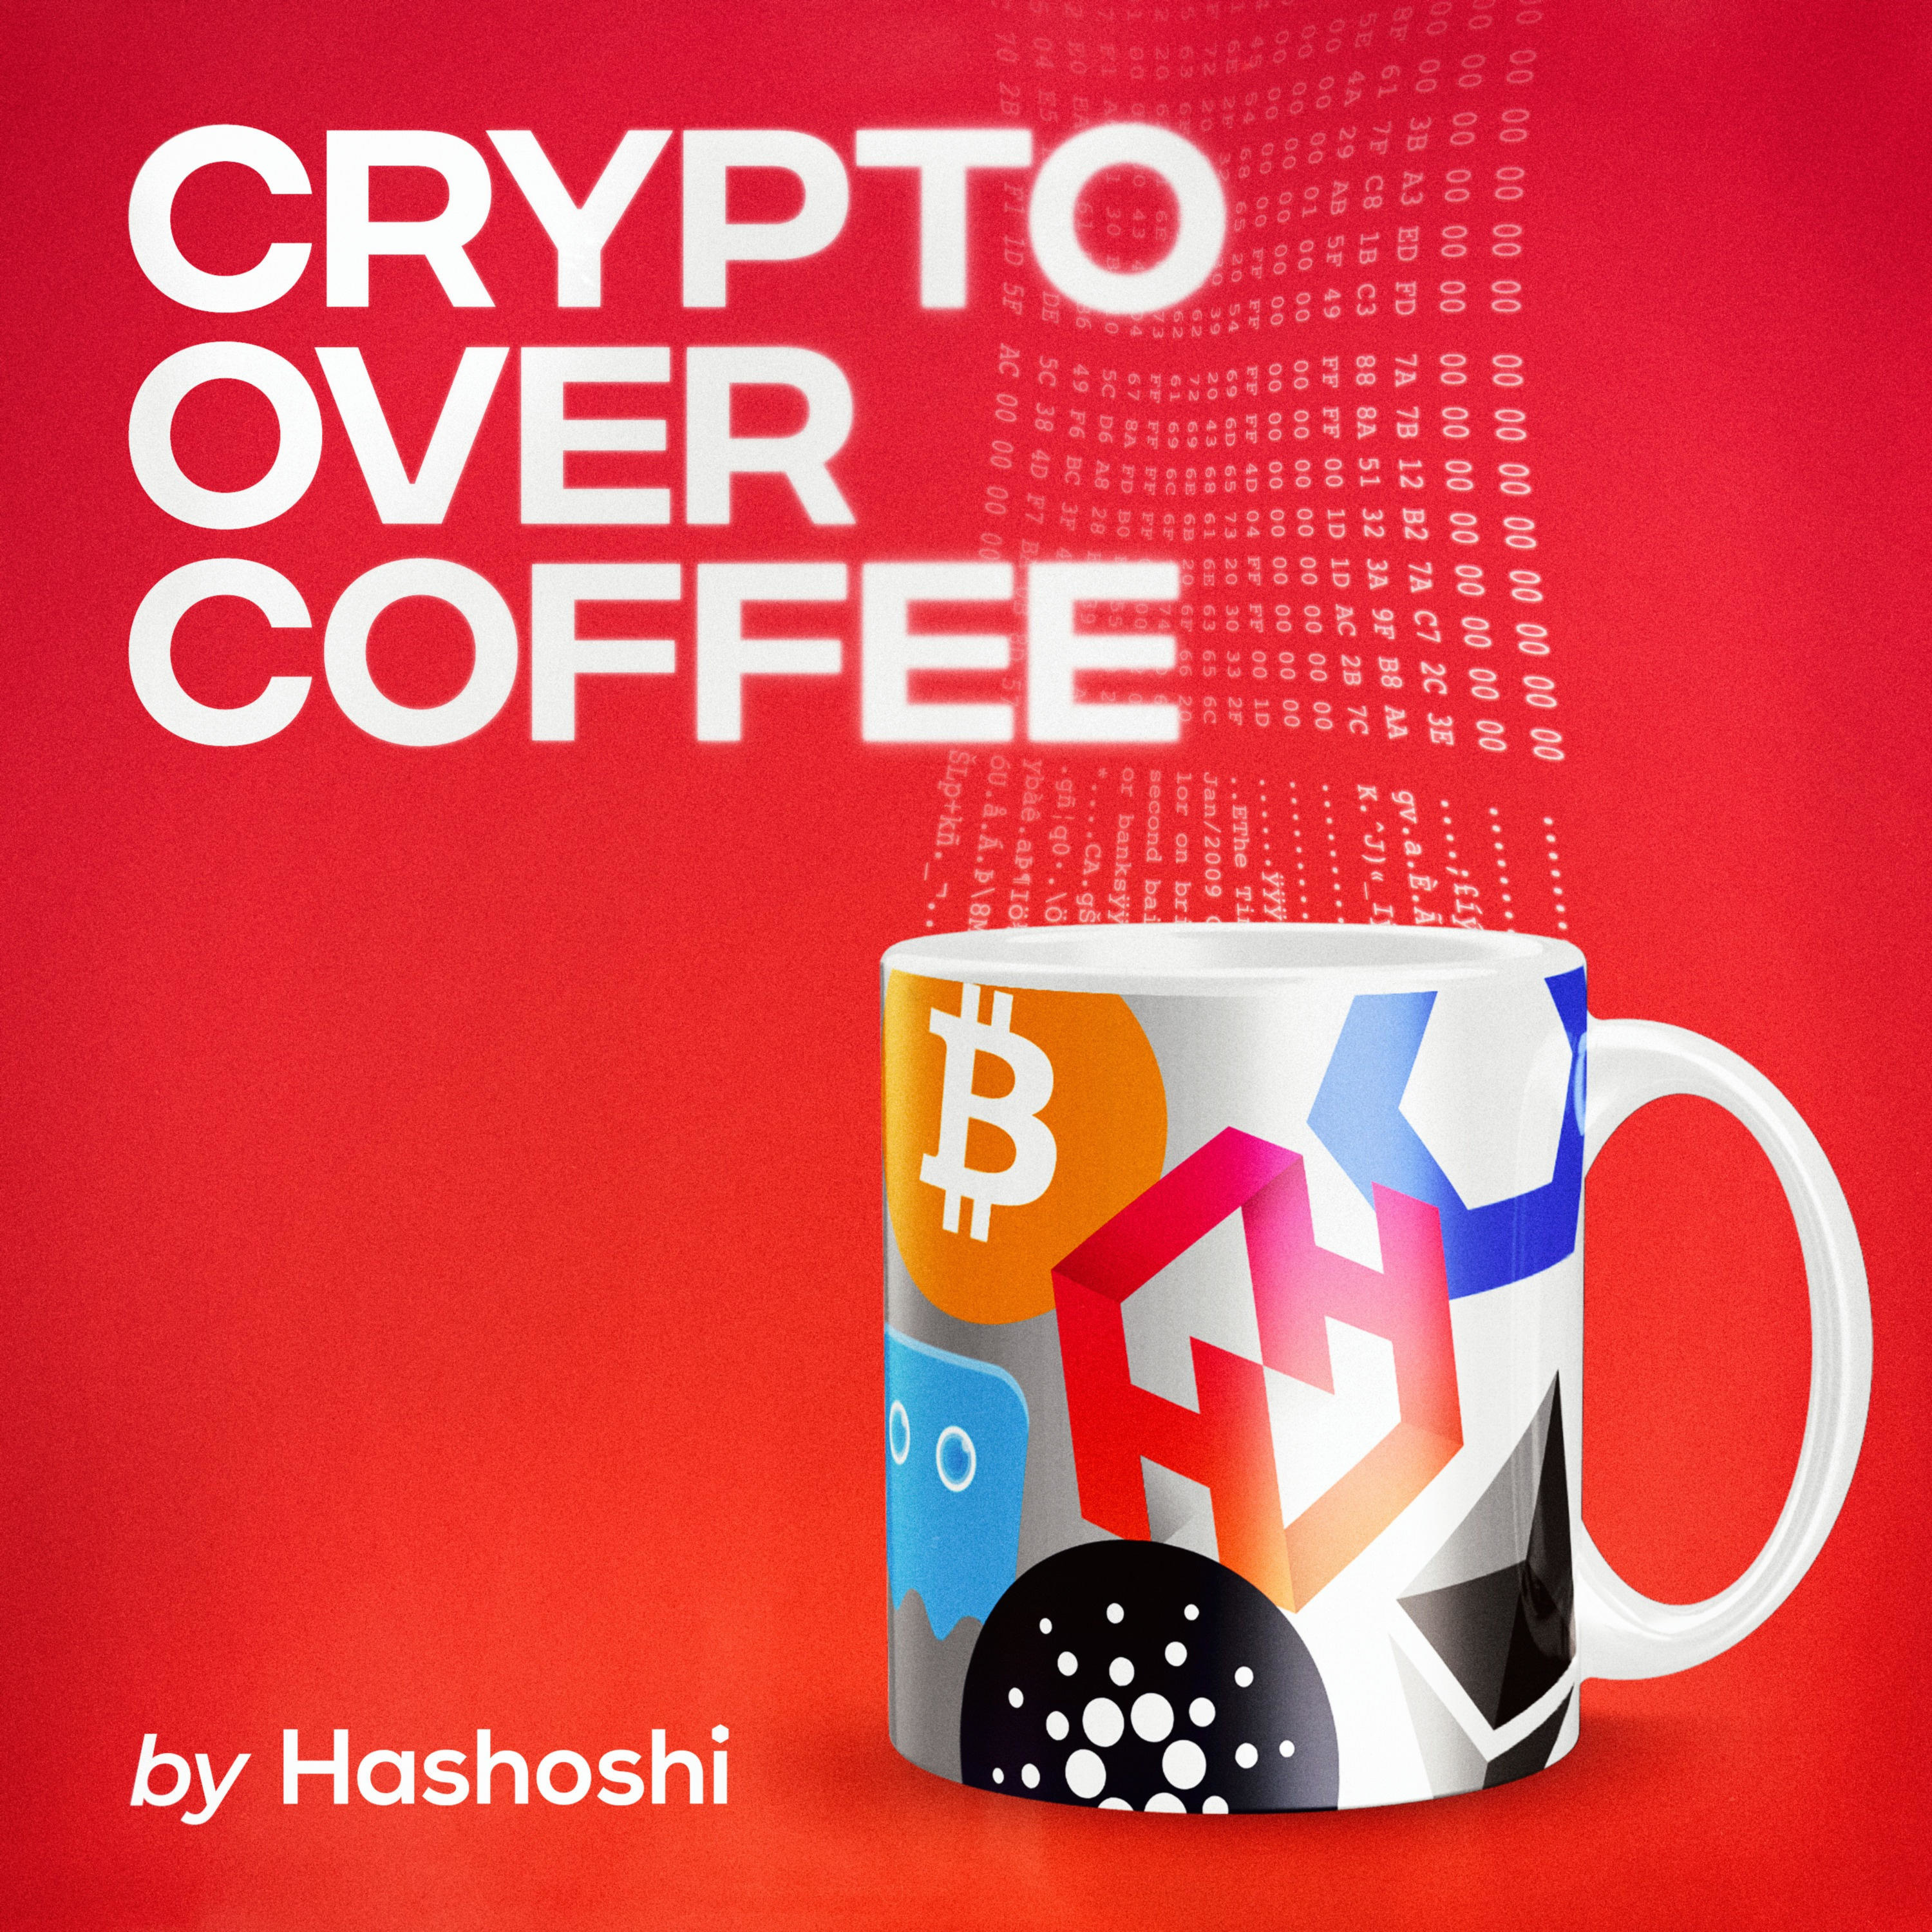 Elrond eGLD could explode when the Maiar Exchange launches 👀 Crypto Over Coffee